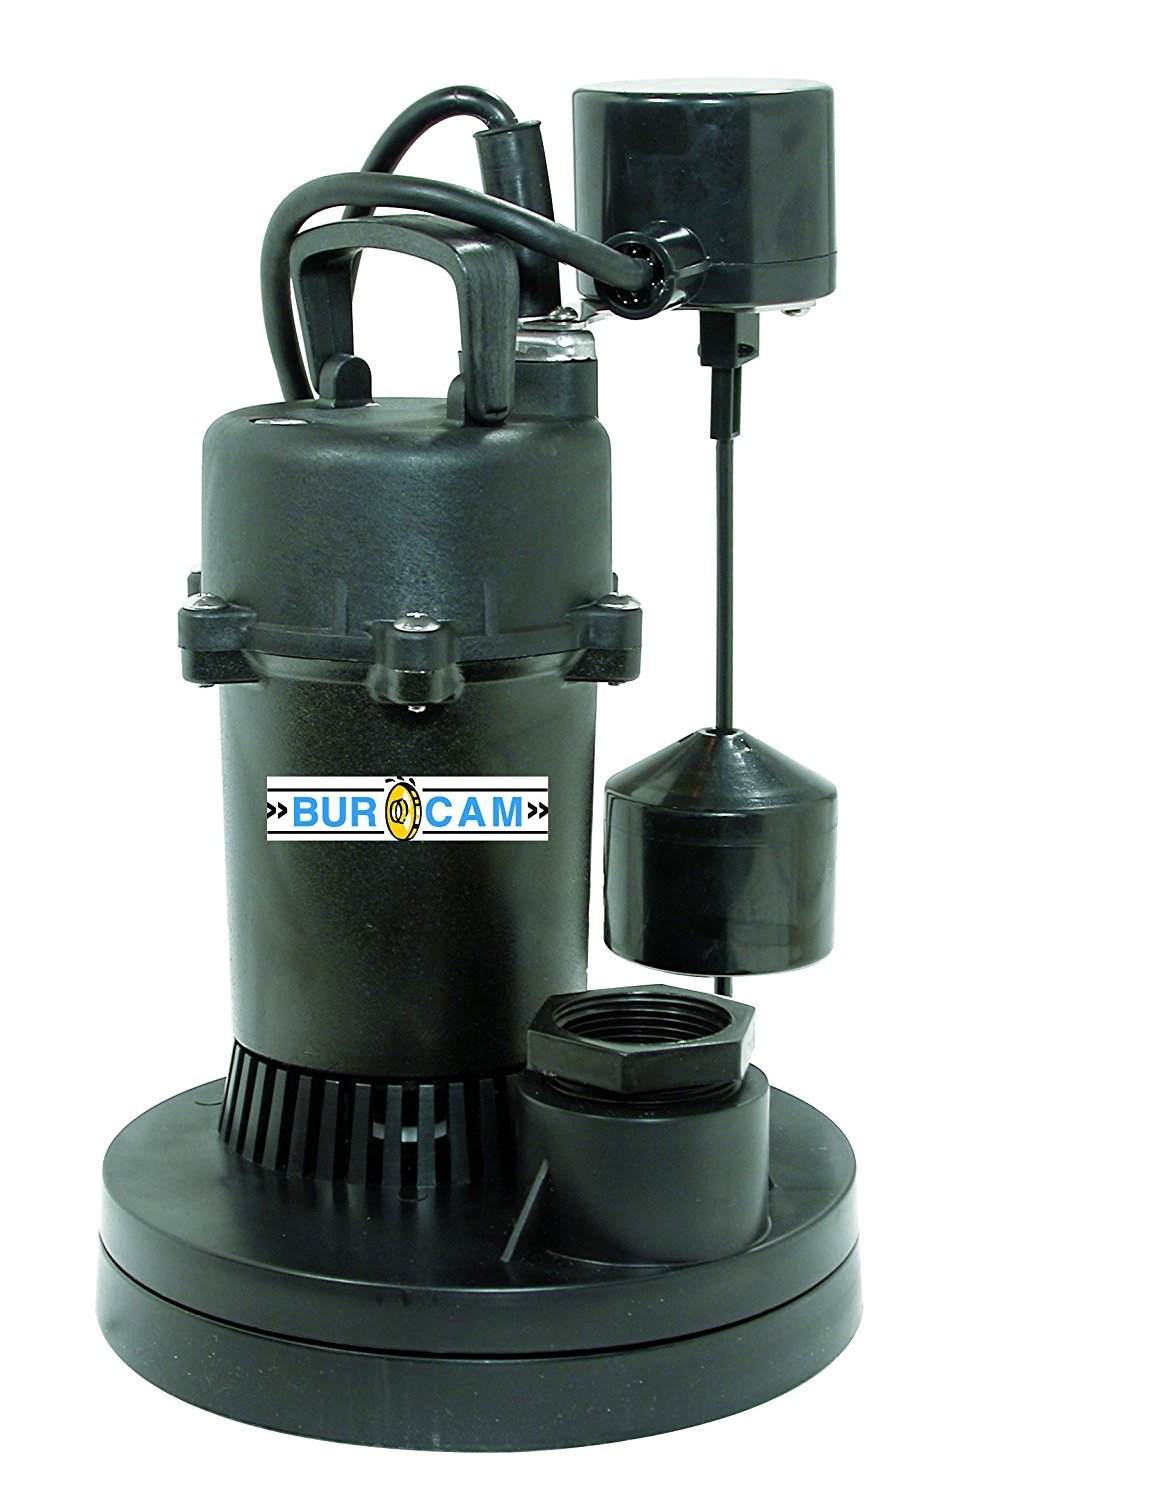 BurCam 300610 Submersible Sump Pump, 1.5'' Discharge with 1.25'' Reducer, 1/3 hp, Vertical Switch, 3000 GPH Max